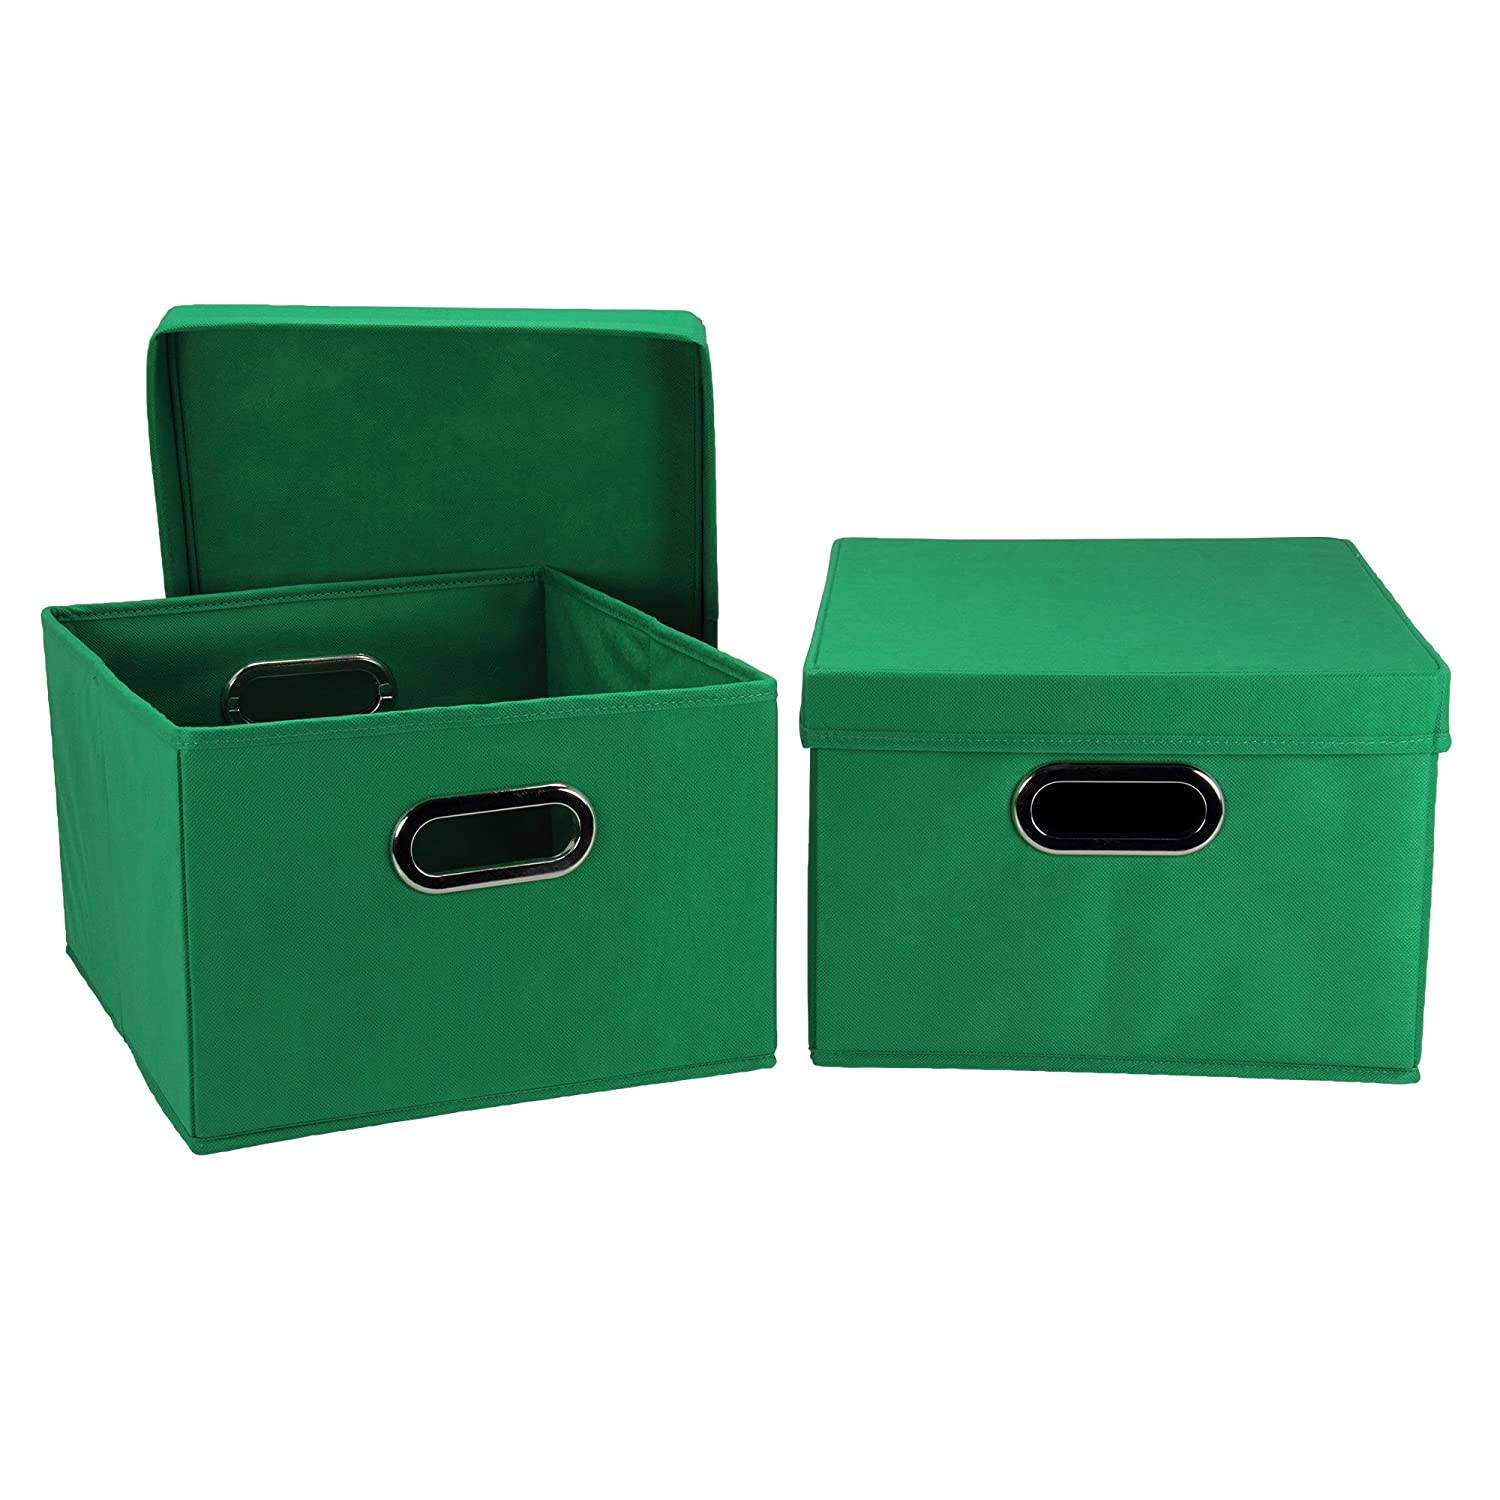 Household Essentials Nested Boxes with Lids, Aqua, Set of 2 Hosuehold Essentials 10KDAQU-1